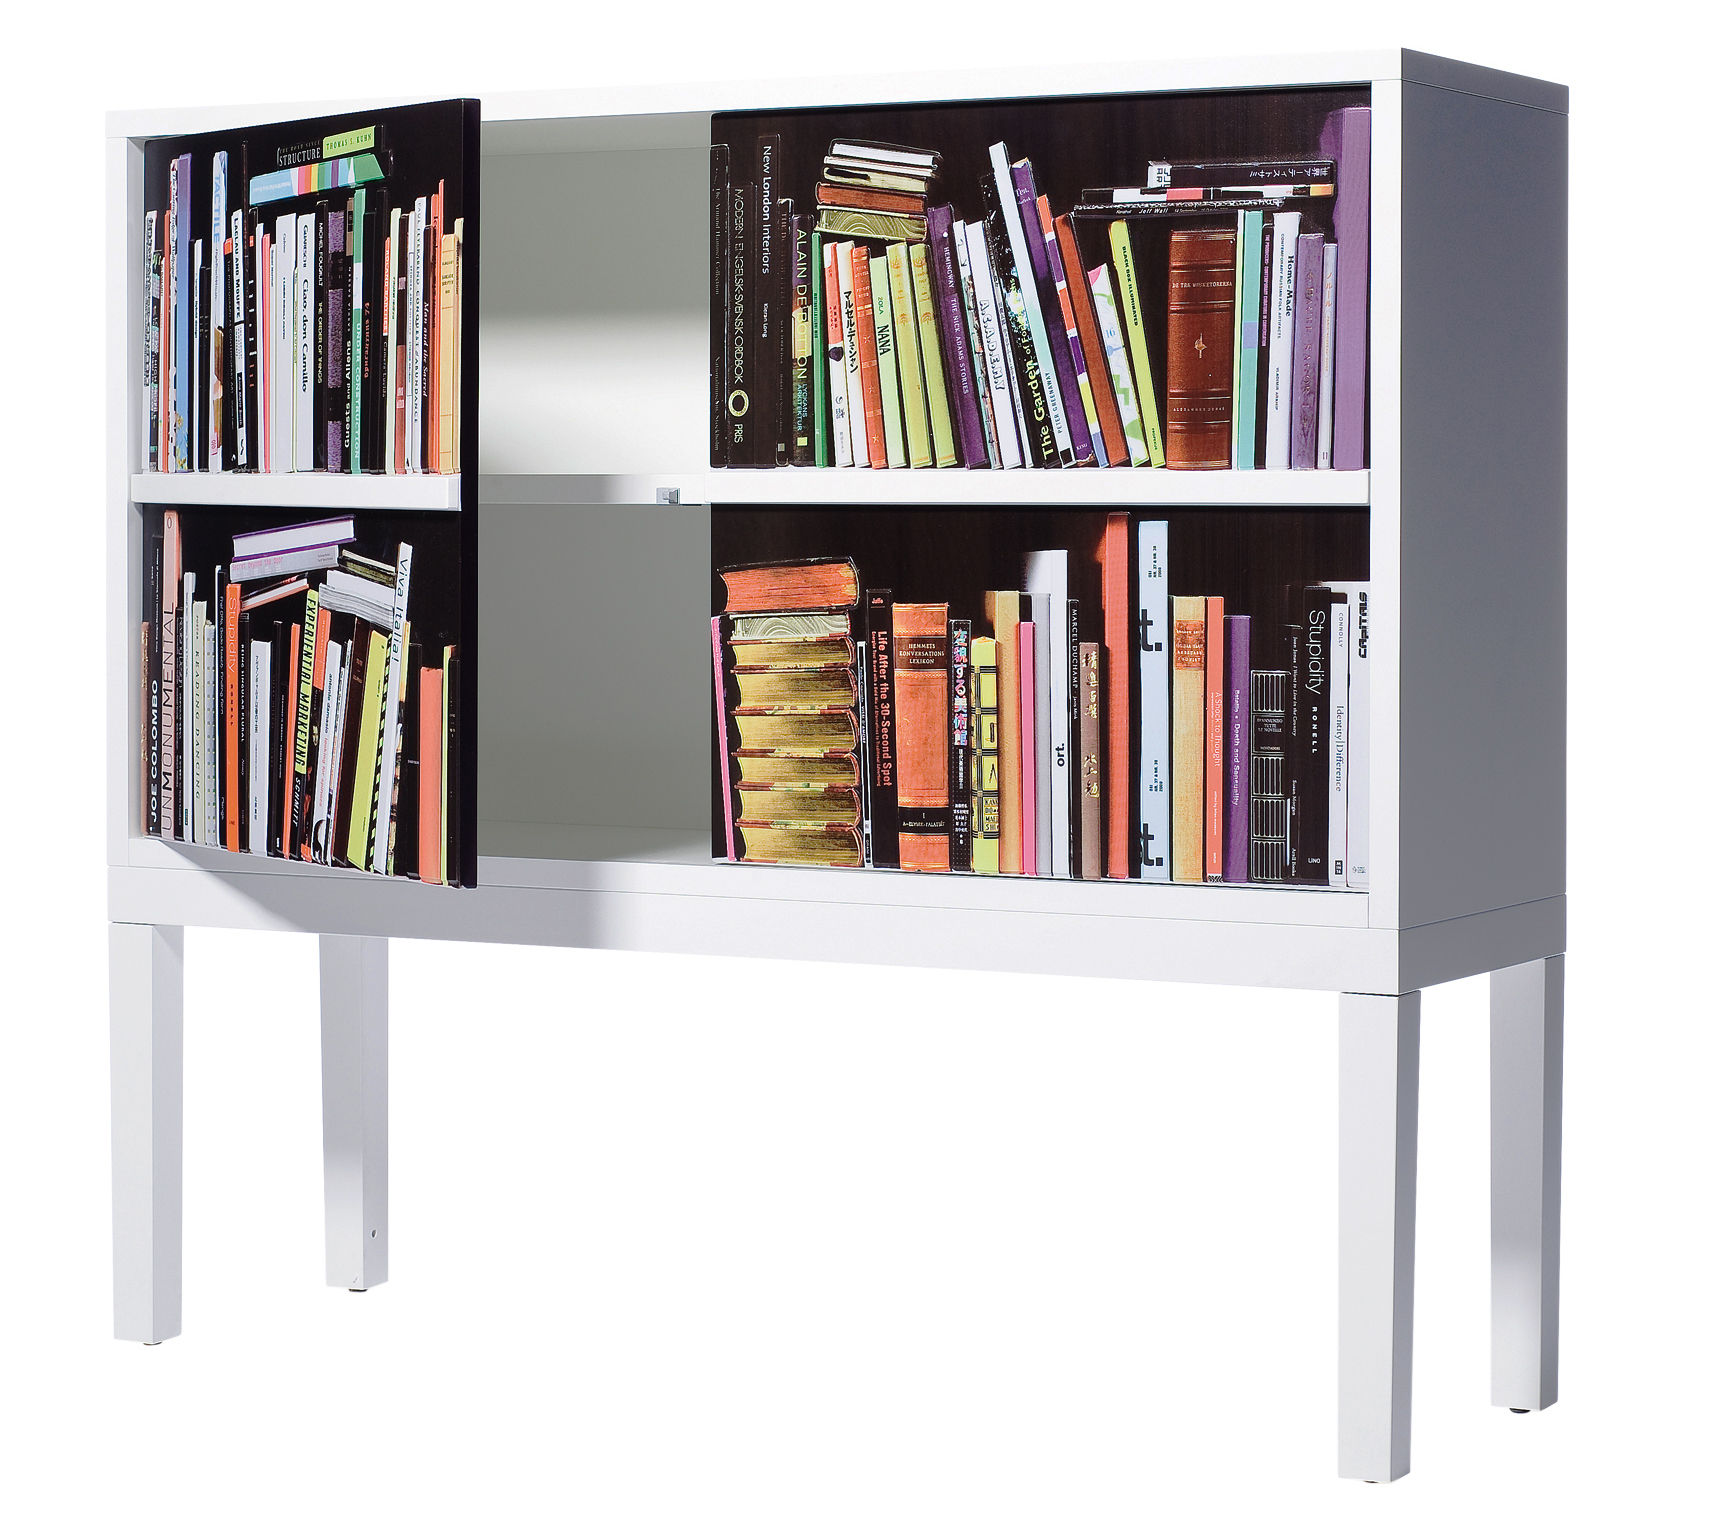 Furniture - Dressers & Storage Units - Bookshelf Dresser - Sideboard by Skitsch - White - Multicoloured - Lacquered MDF